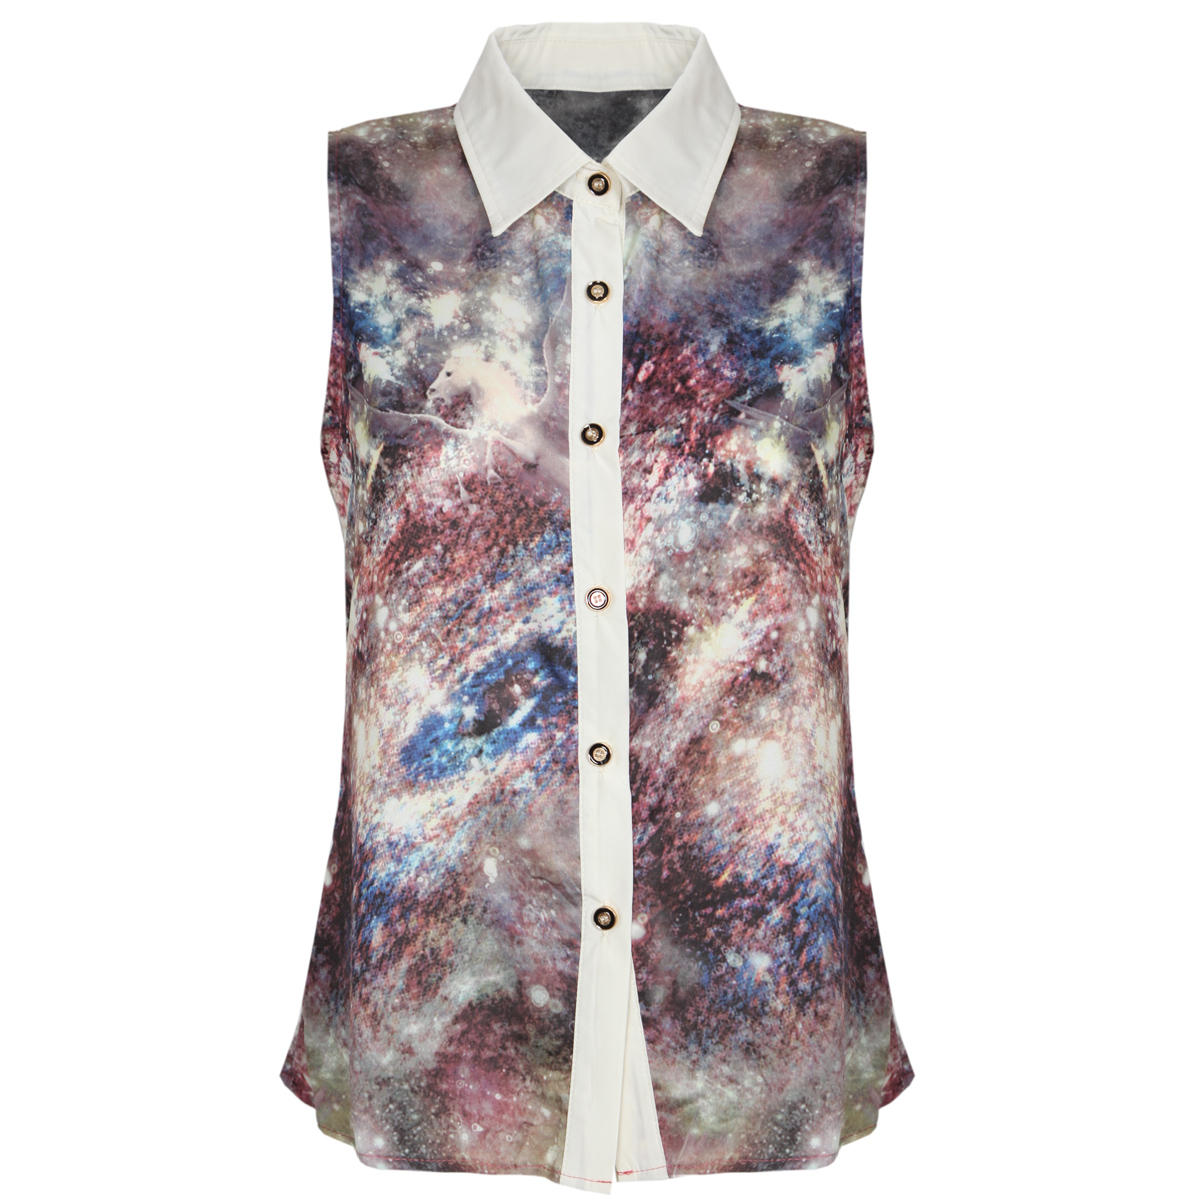 Galaxy Print Sleeveless Shirt Preview